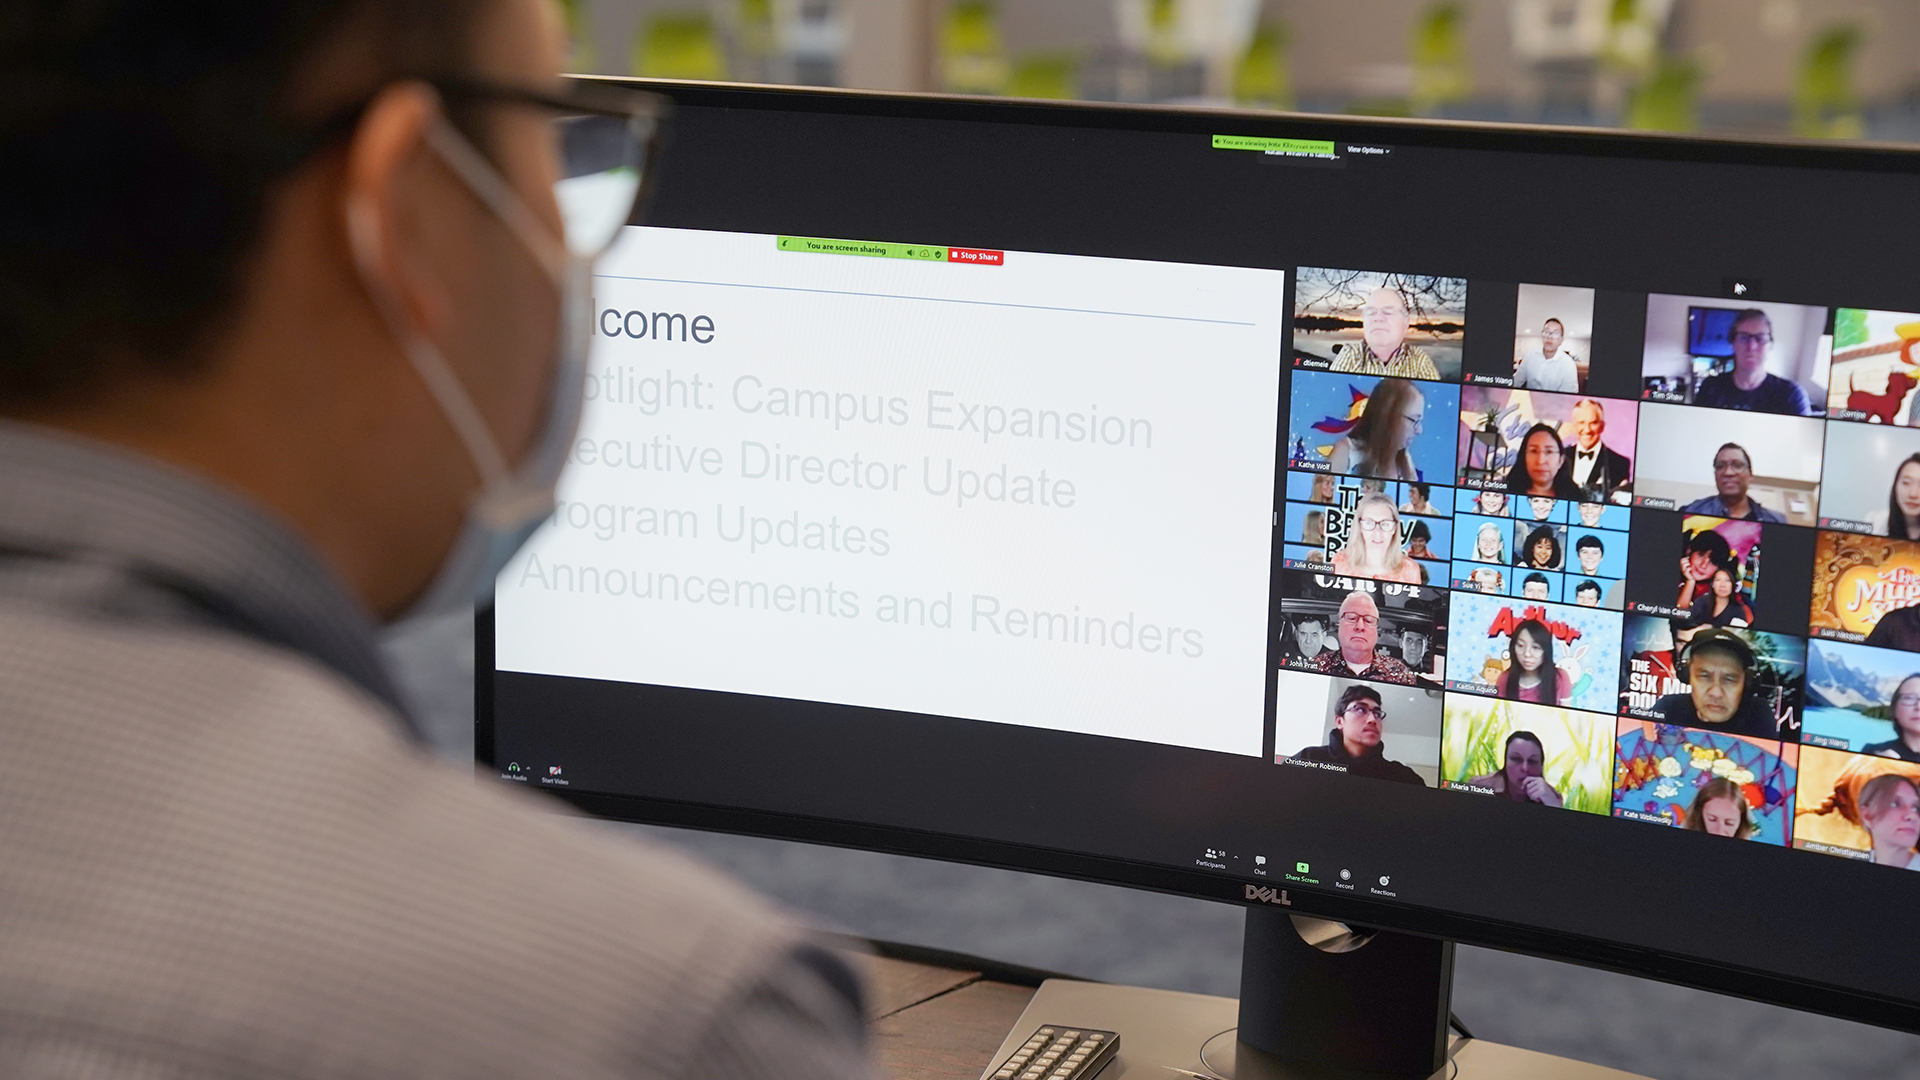 Looking over the shoulder of a person wearing a face mask at a computer monitor screen. On the screen there are participants of a Zoom webinar in a grid on the right side of the screen and Powerpoint presentation on the left side of the screen. The presentation shows an agenda for the meeting.